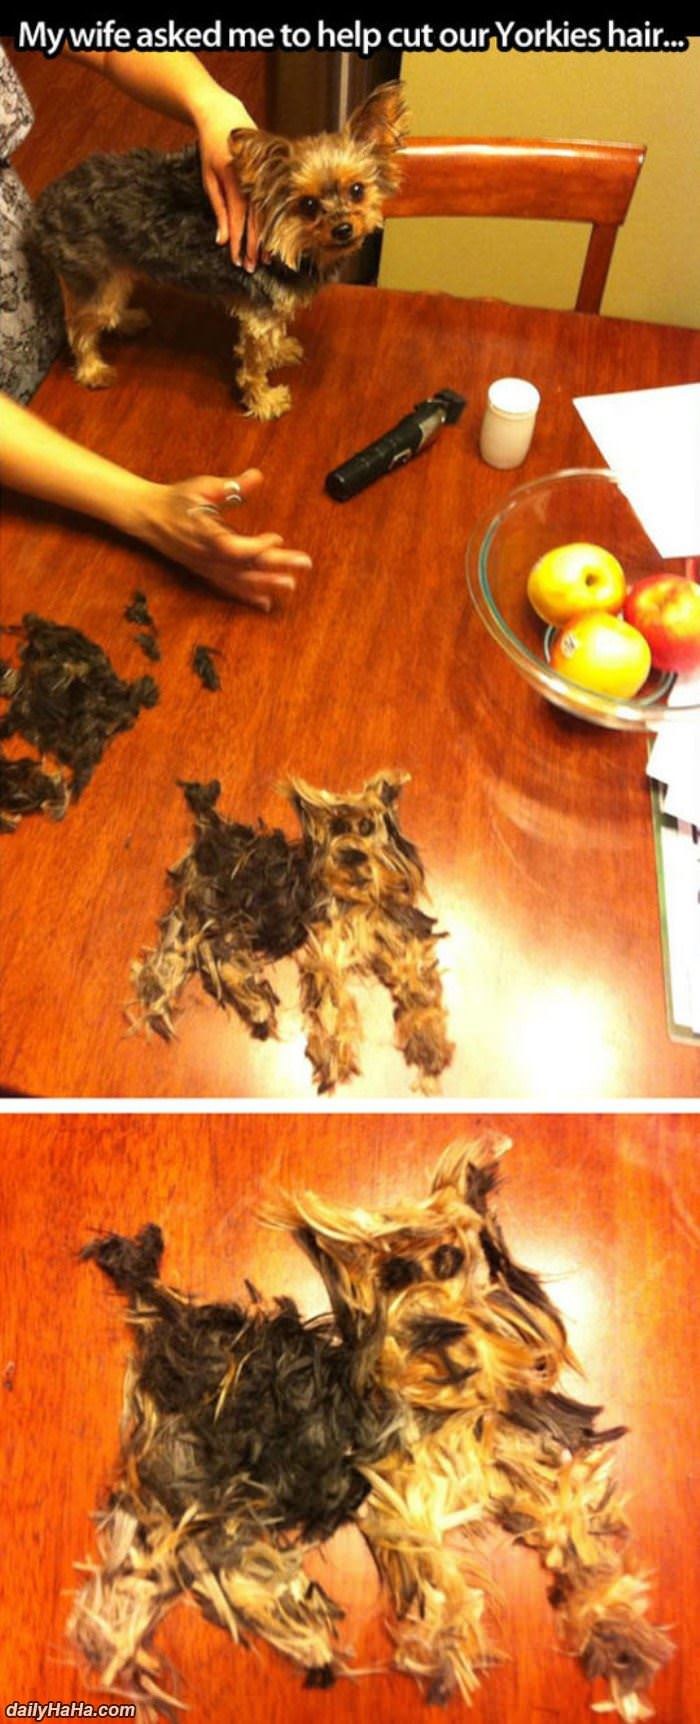 help cut the yorkies hair funny picture